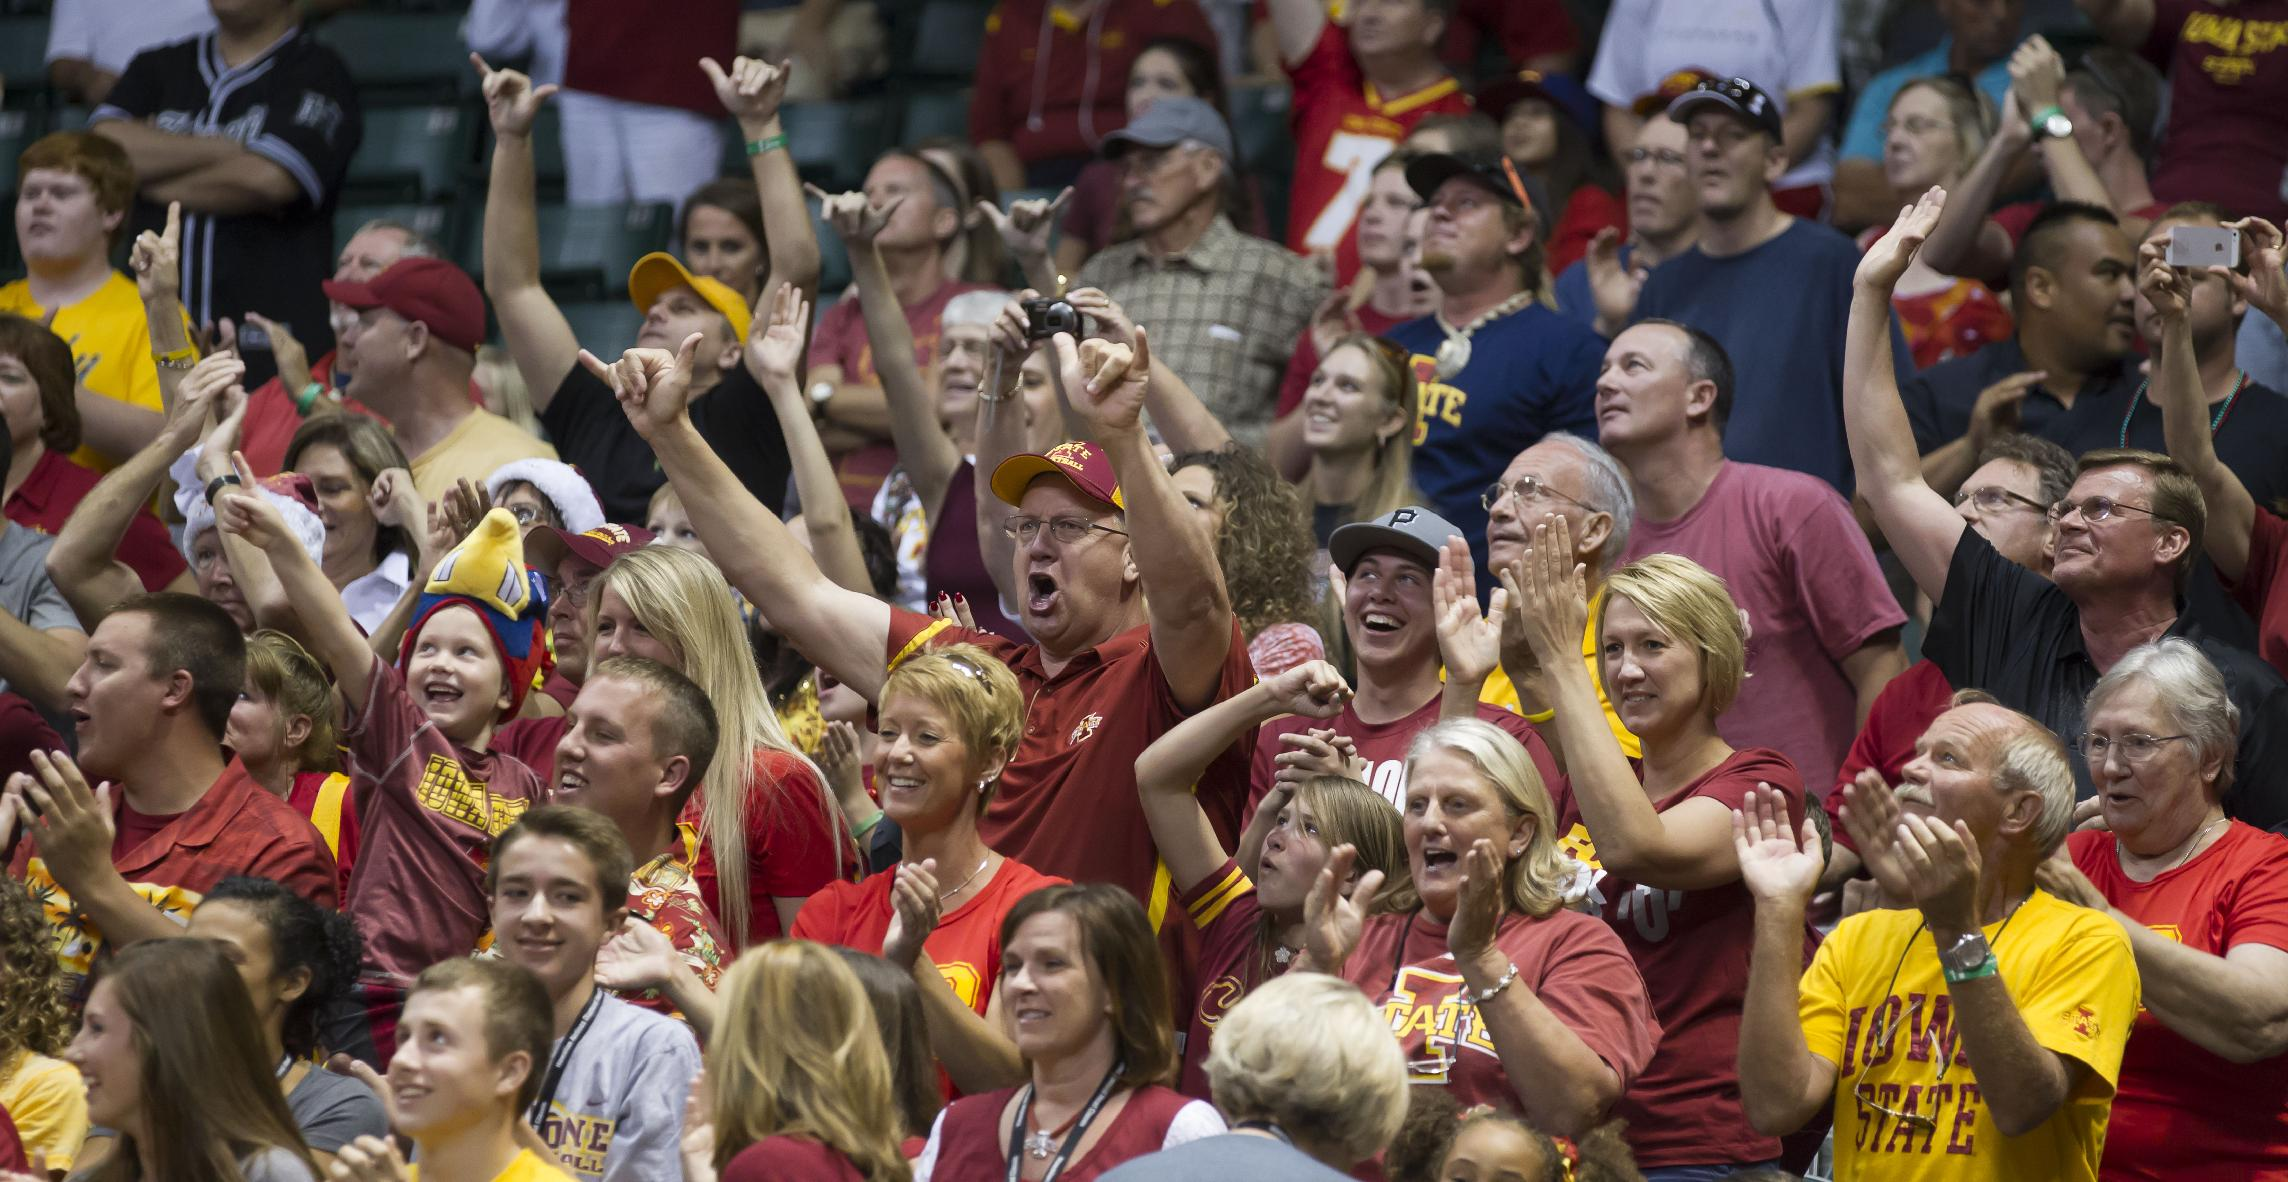 The Iowa State fans count down the final seconds of the game as their team defeated Boise State 70-66 in an NCAA college basketball game at the Diamond Head Classic on Wednesday, Dec. 25, 2013, in Honolulu